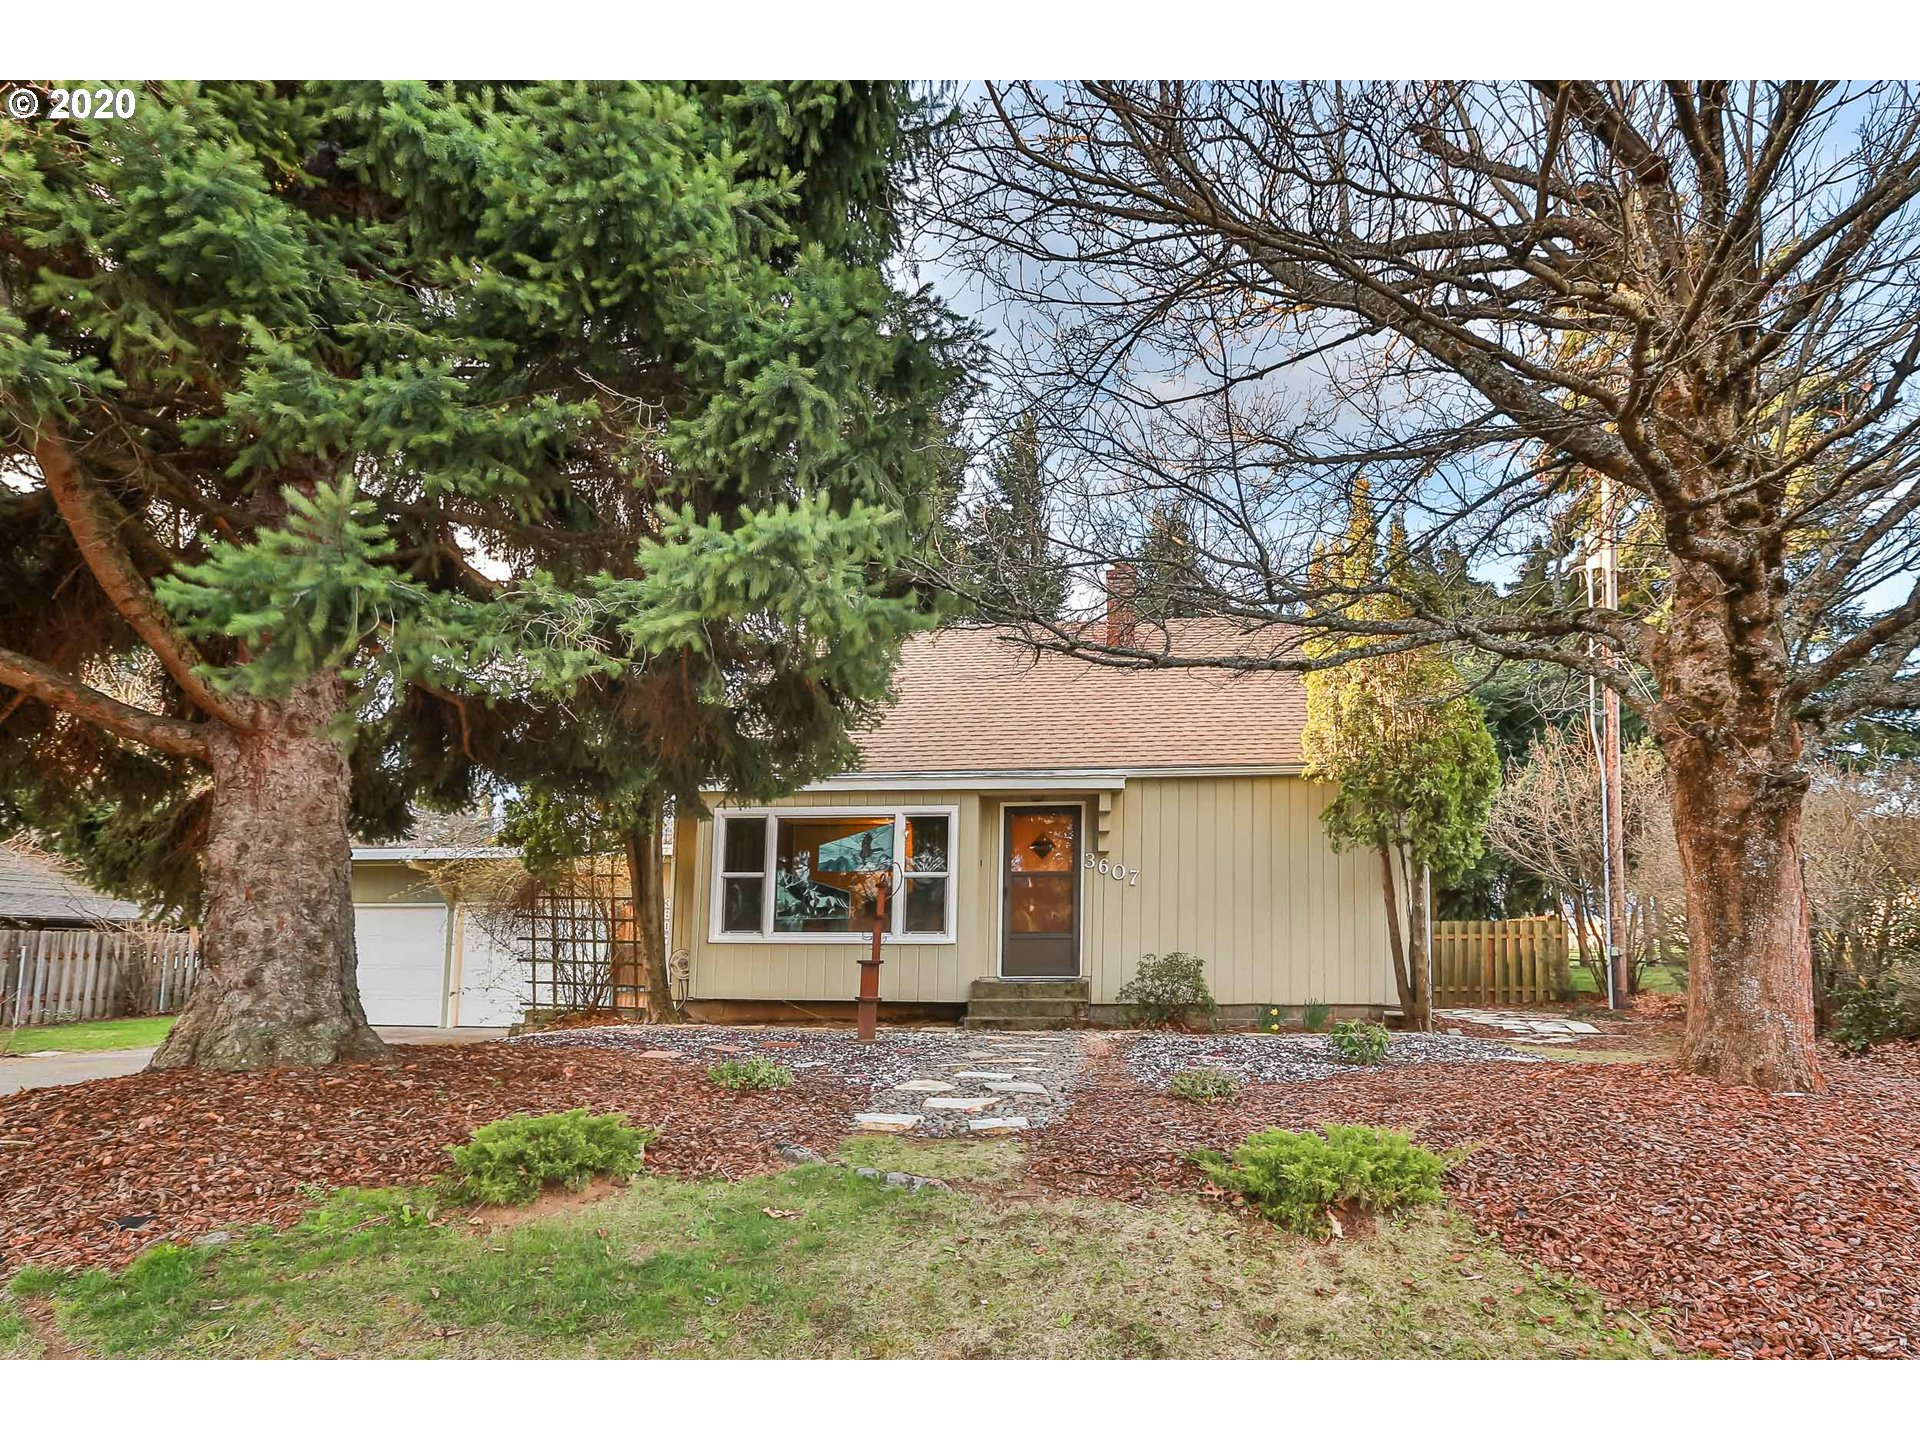 Photo of 3607 BELMONT DR Hood River OR 97031